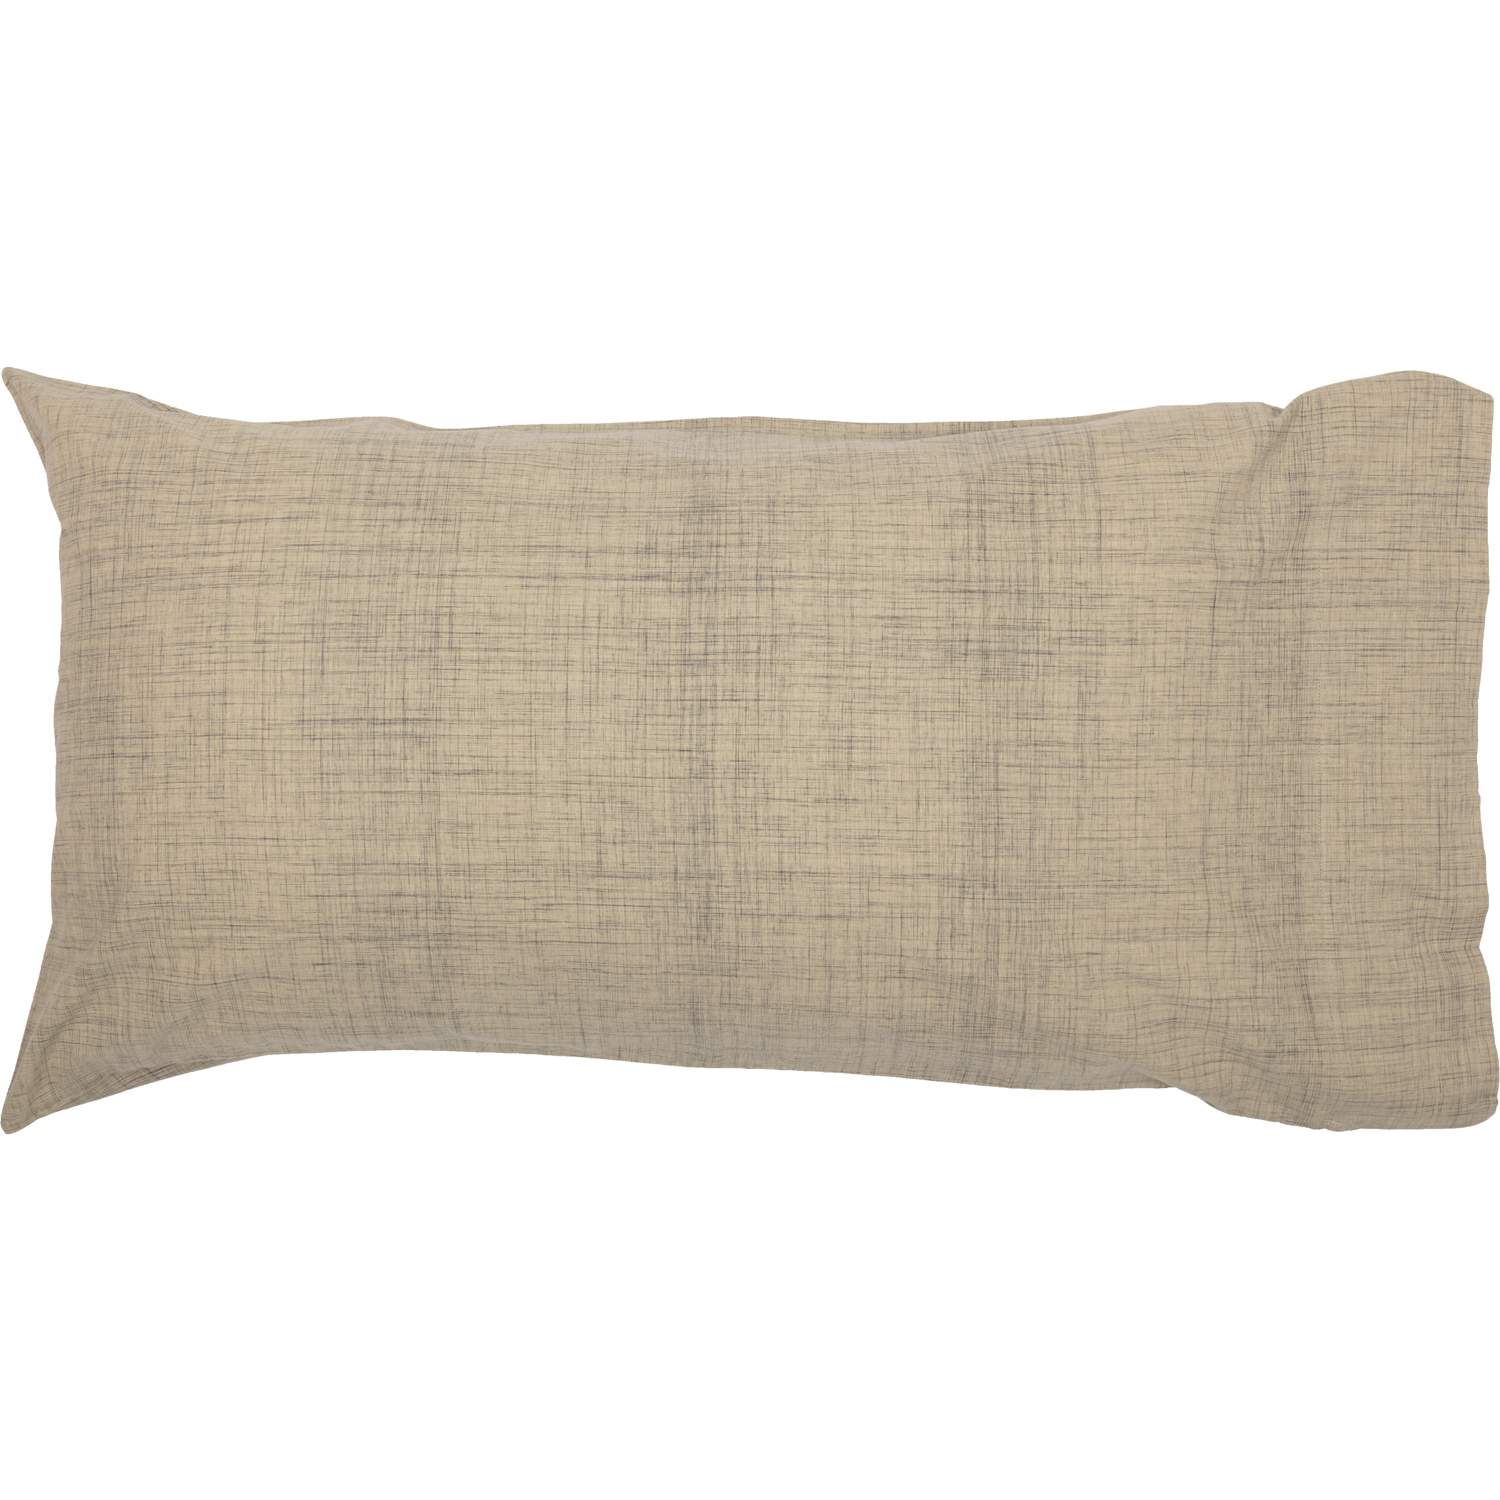 Winter-Tidings-Pillow-Cover-18x18-image-4